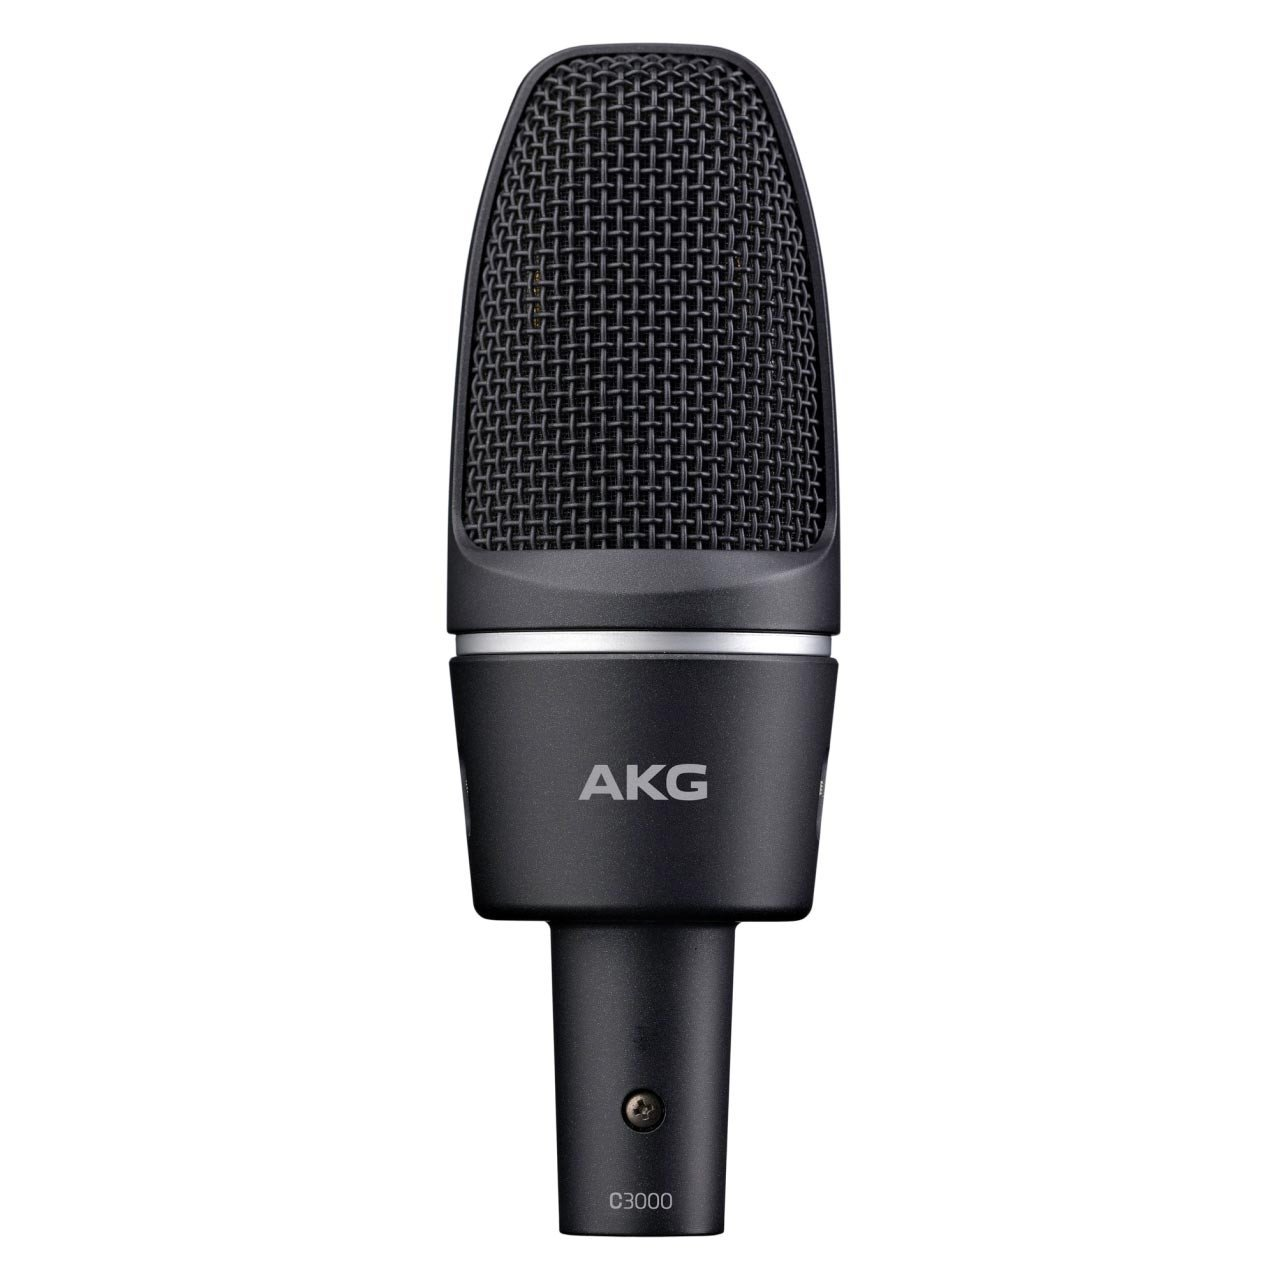 Condenser Microphones - AKG C3000 High-performance Large-diaphragm Condenser Microphone